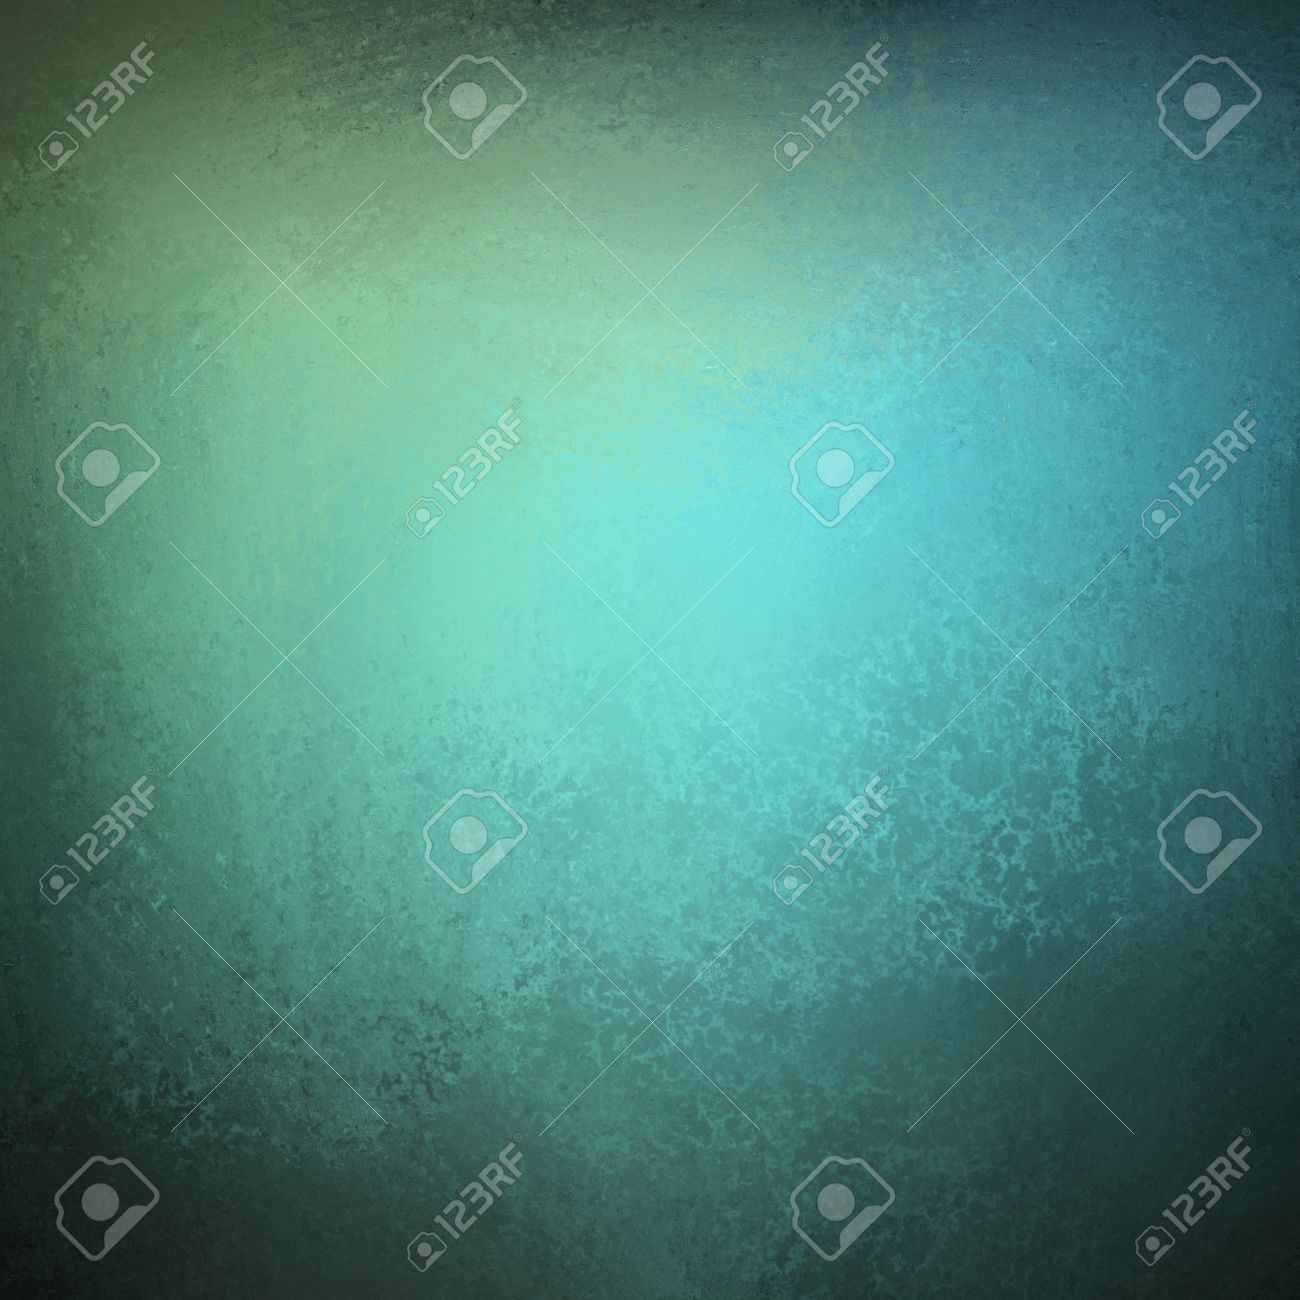 beautiful blue background with dark vintage grunge texture and lighting of black vignette frame on border of canvas and distressed stain streaks on wallpaper illustration design for graffiti art Stock Illustration - 12865974